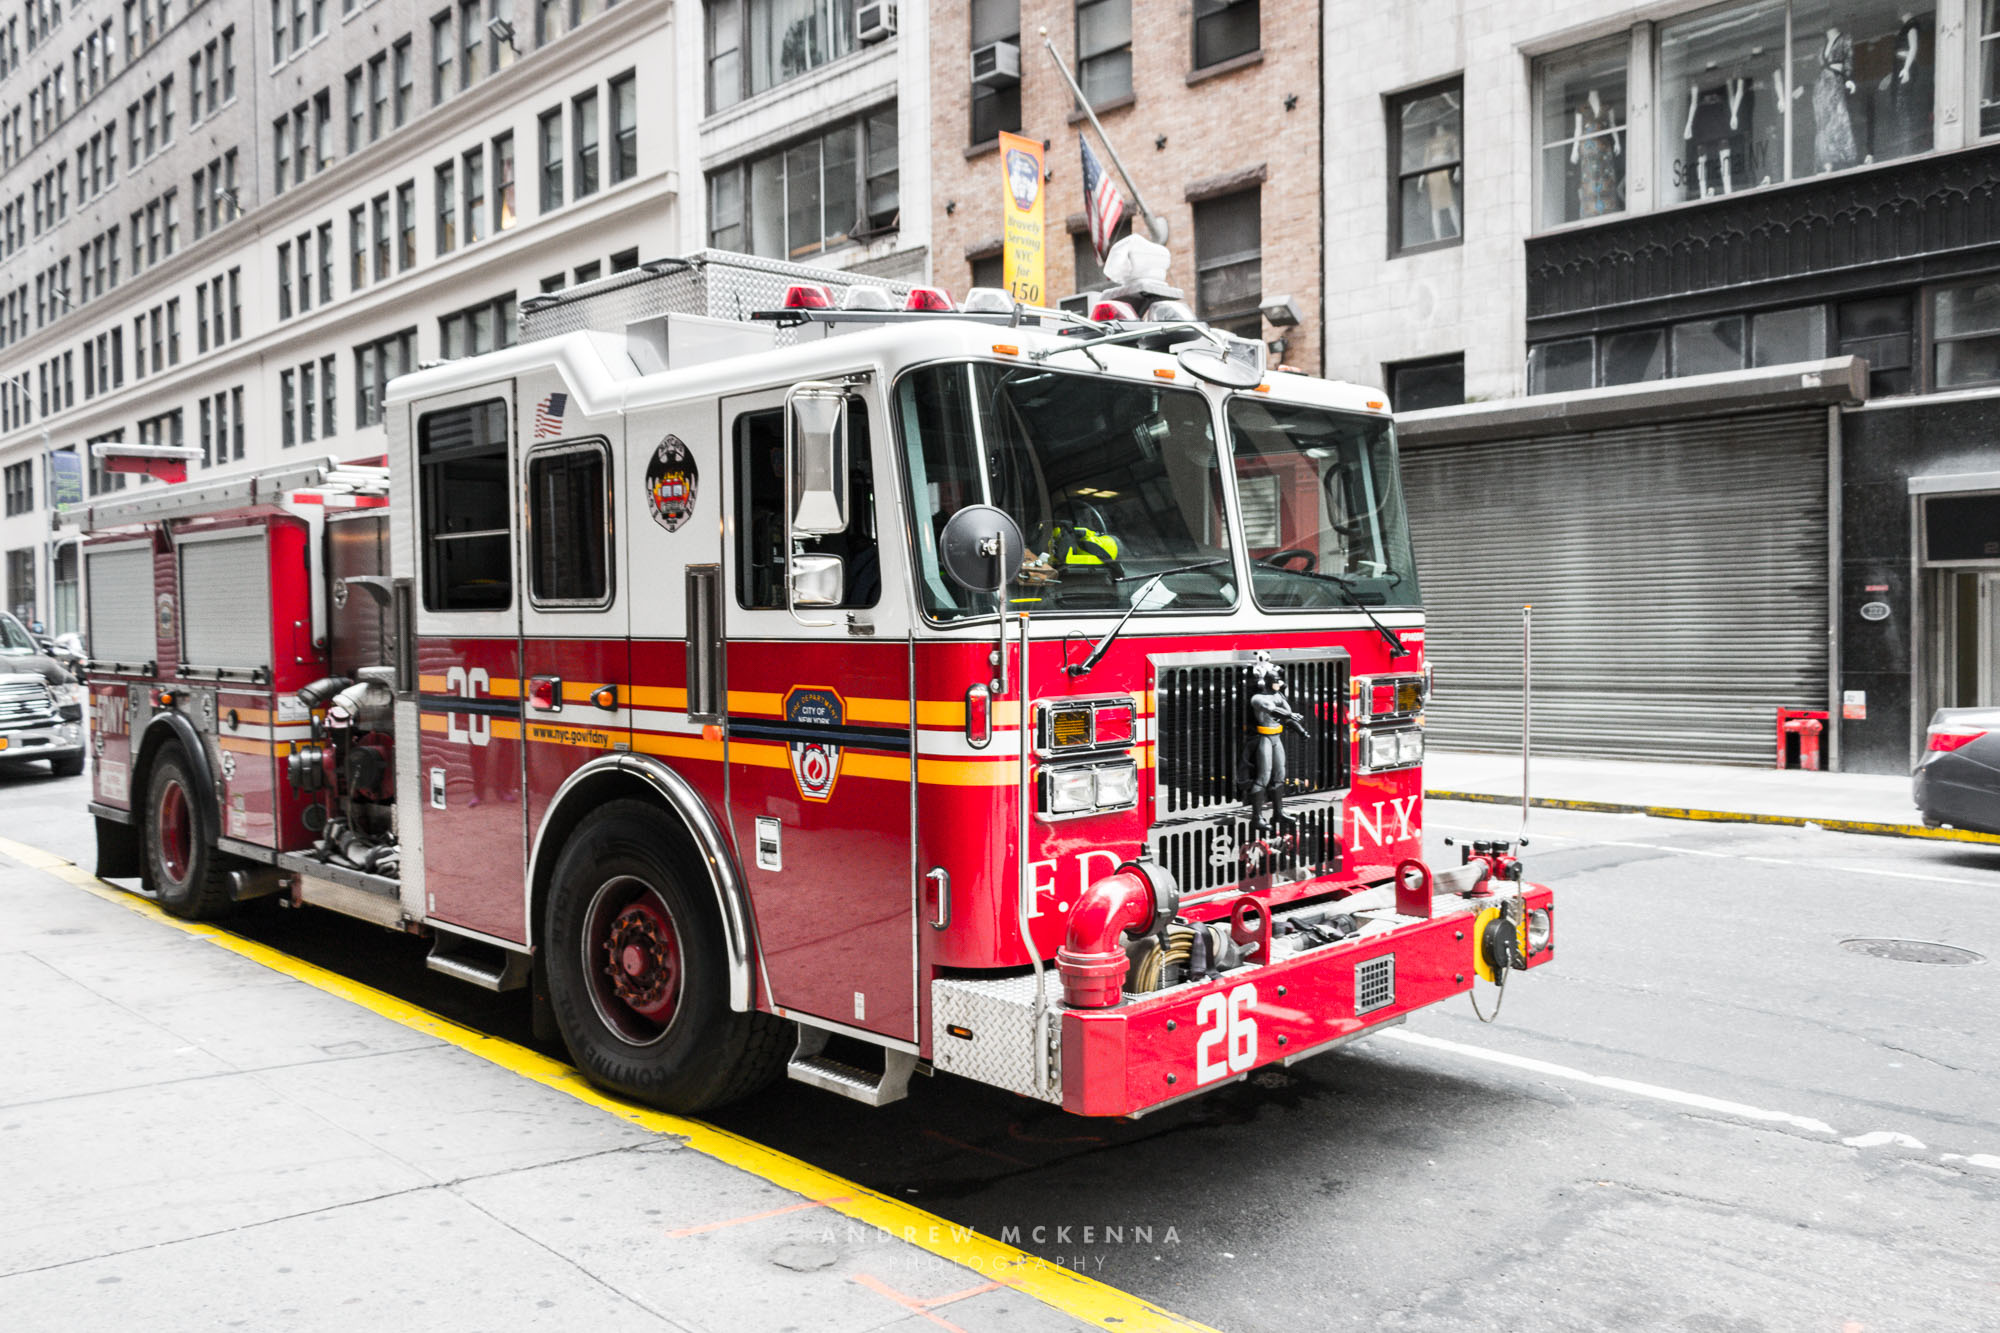 New York NYC Photographer Travel photographer FDNY